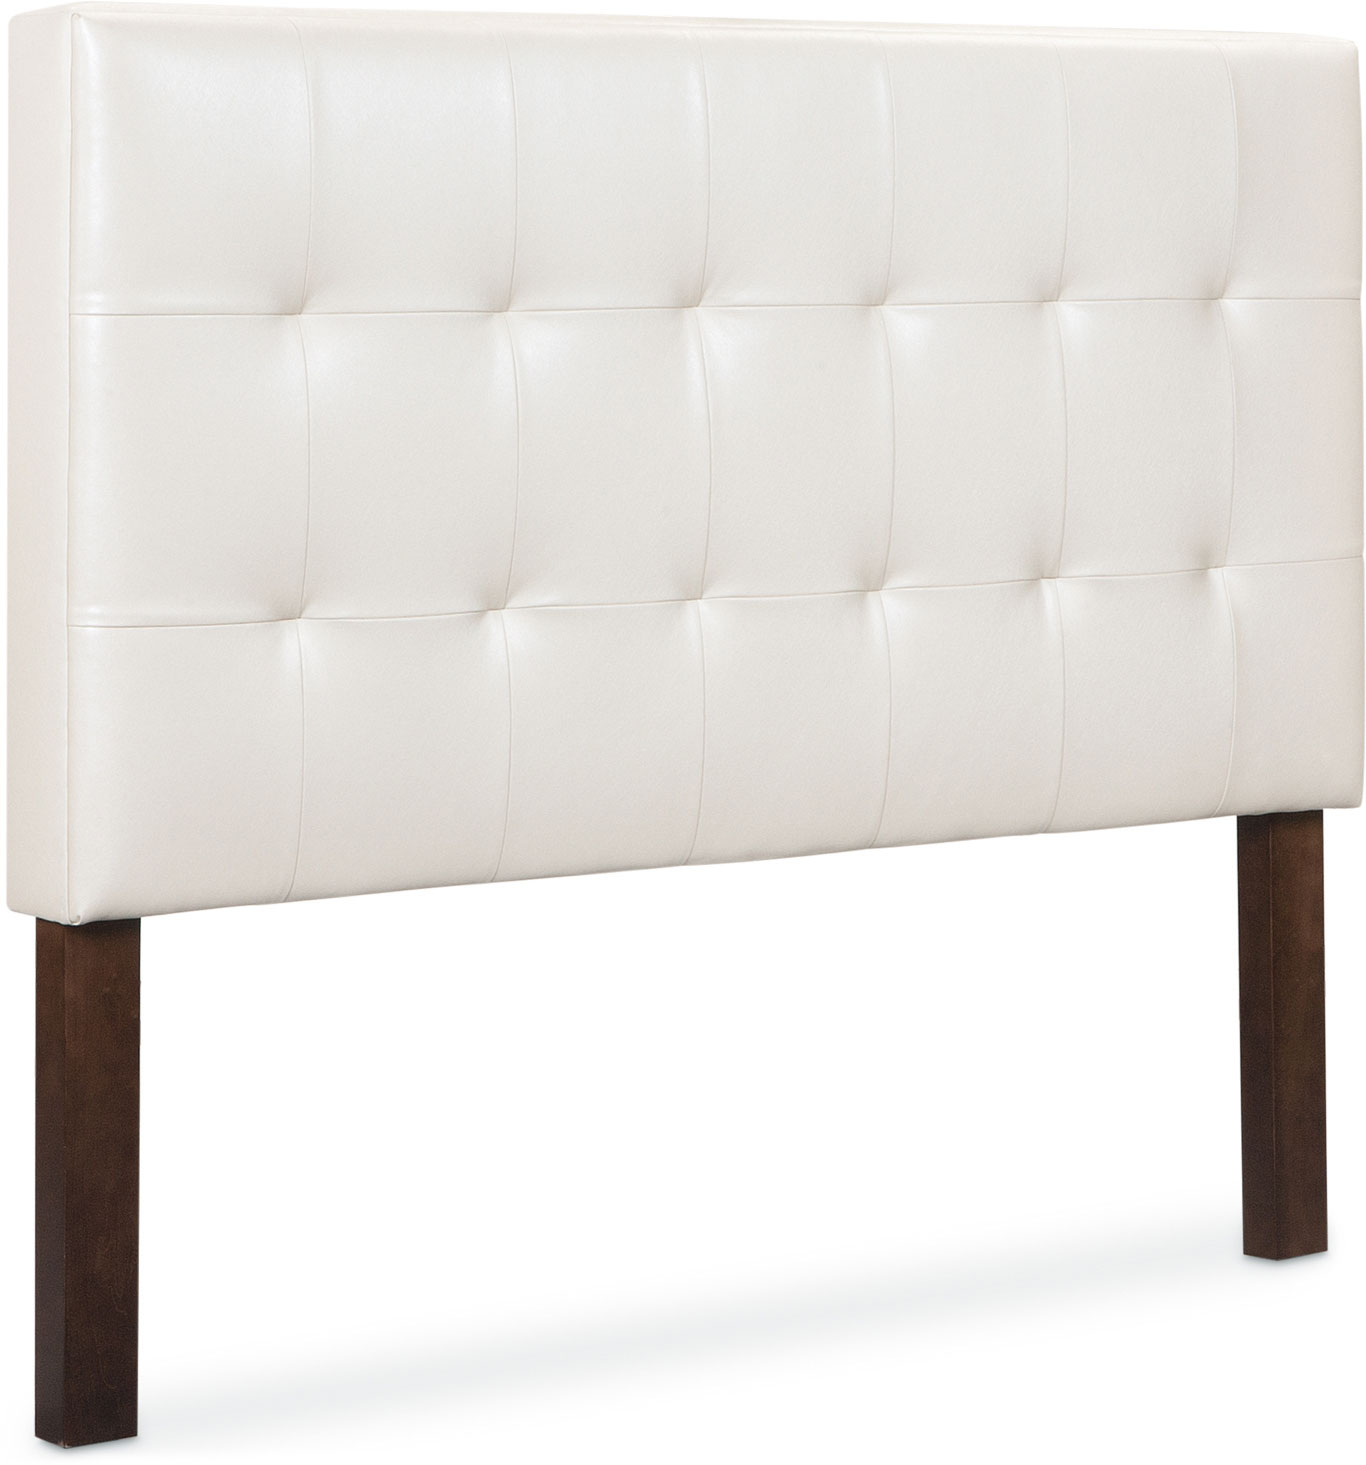 Marquis Seating - Hospitality Seating - Headboards - Lane